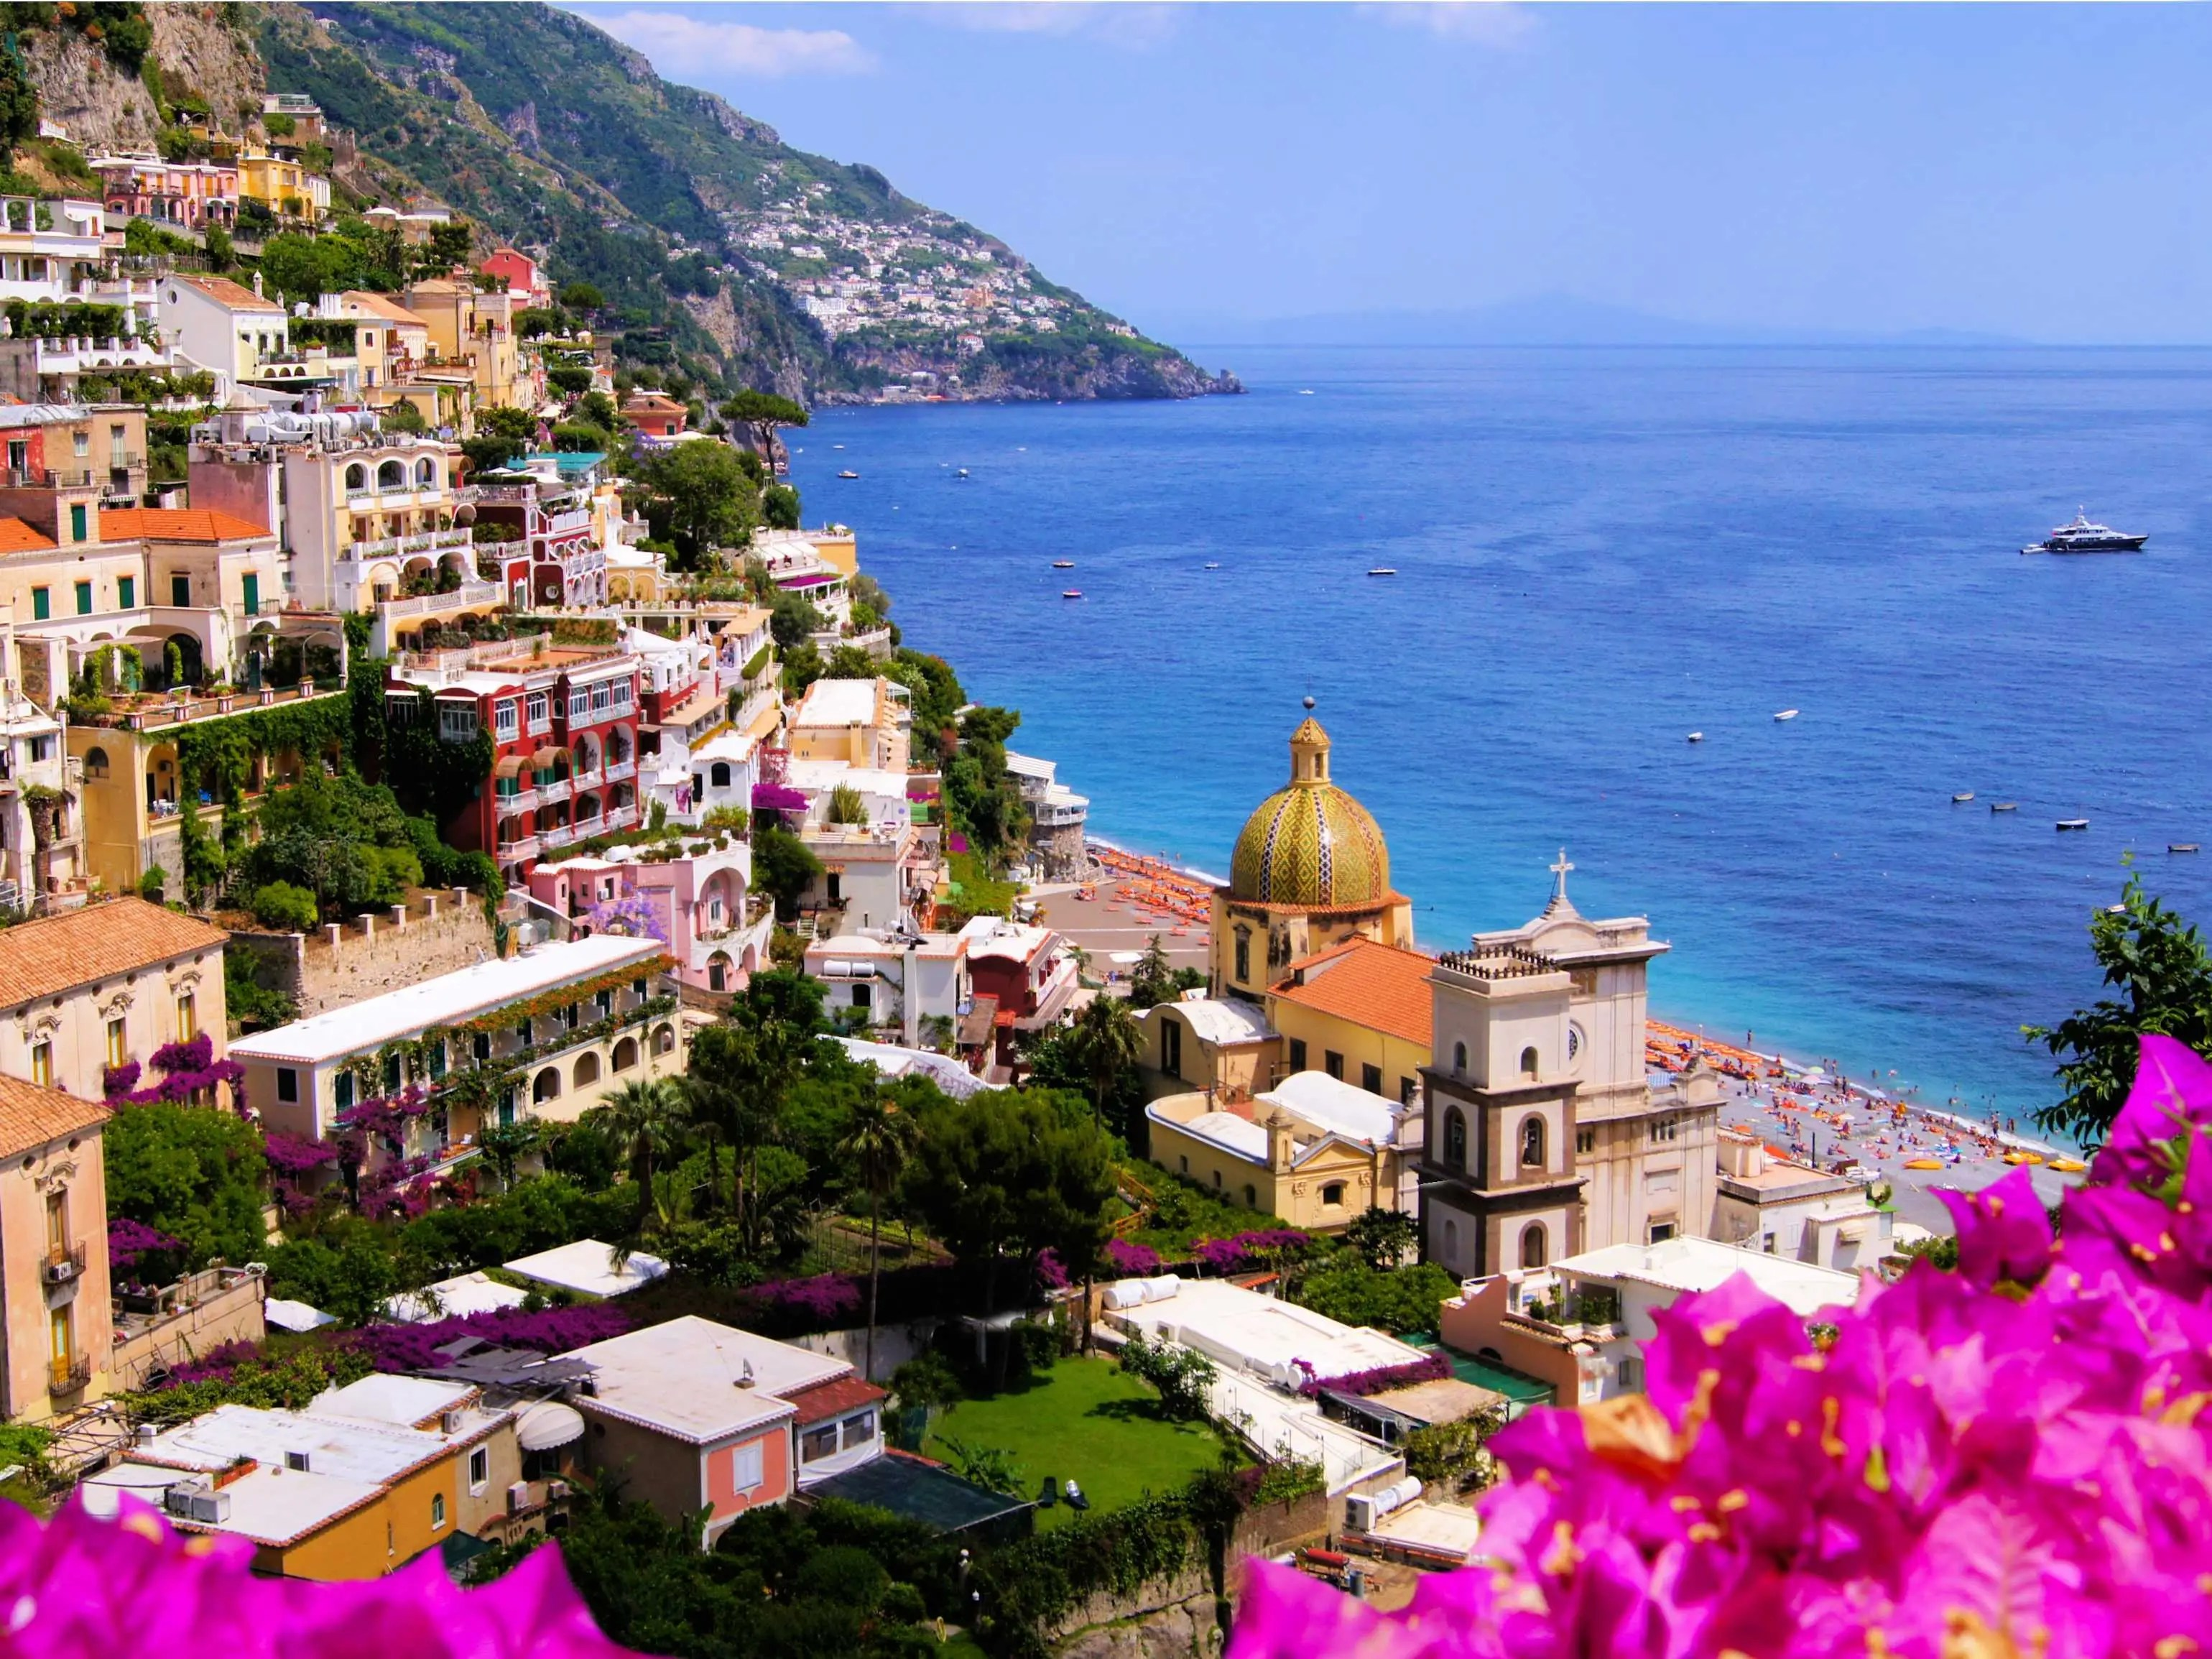 Hug the cliffs while driving along the Amalfi Coast in Italy, and visit the charming towns of Positano, Ravello, and Salerno.